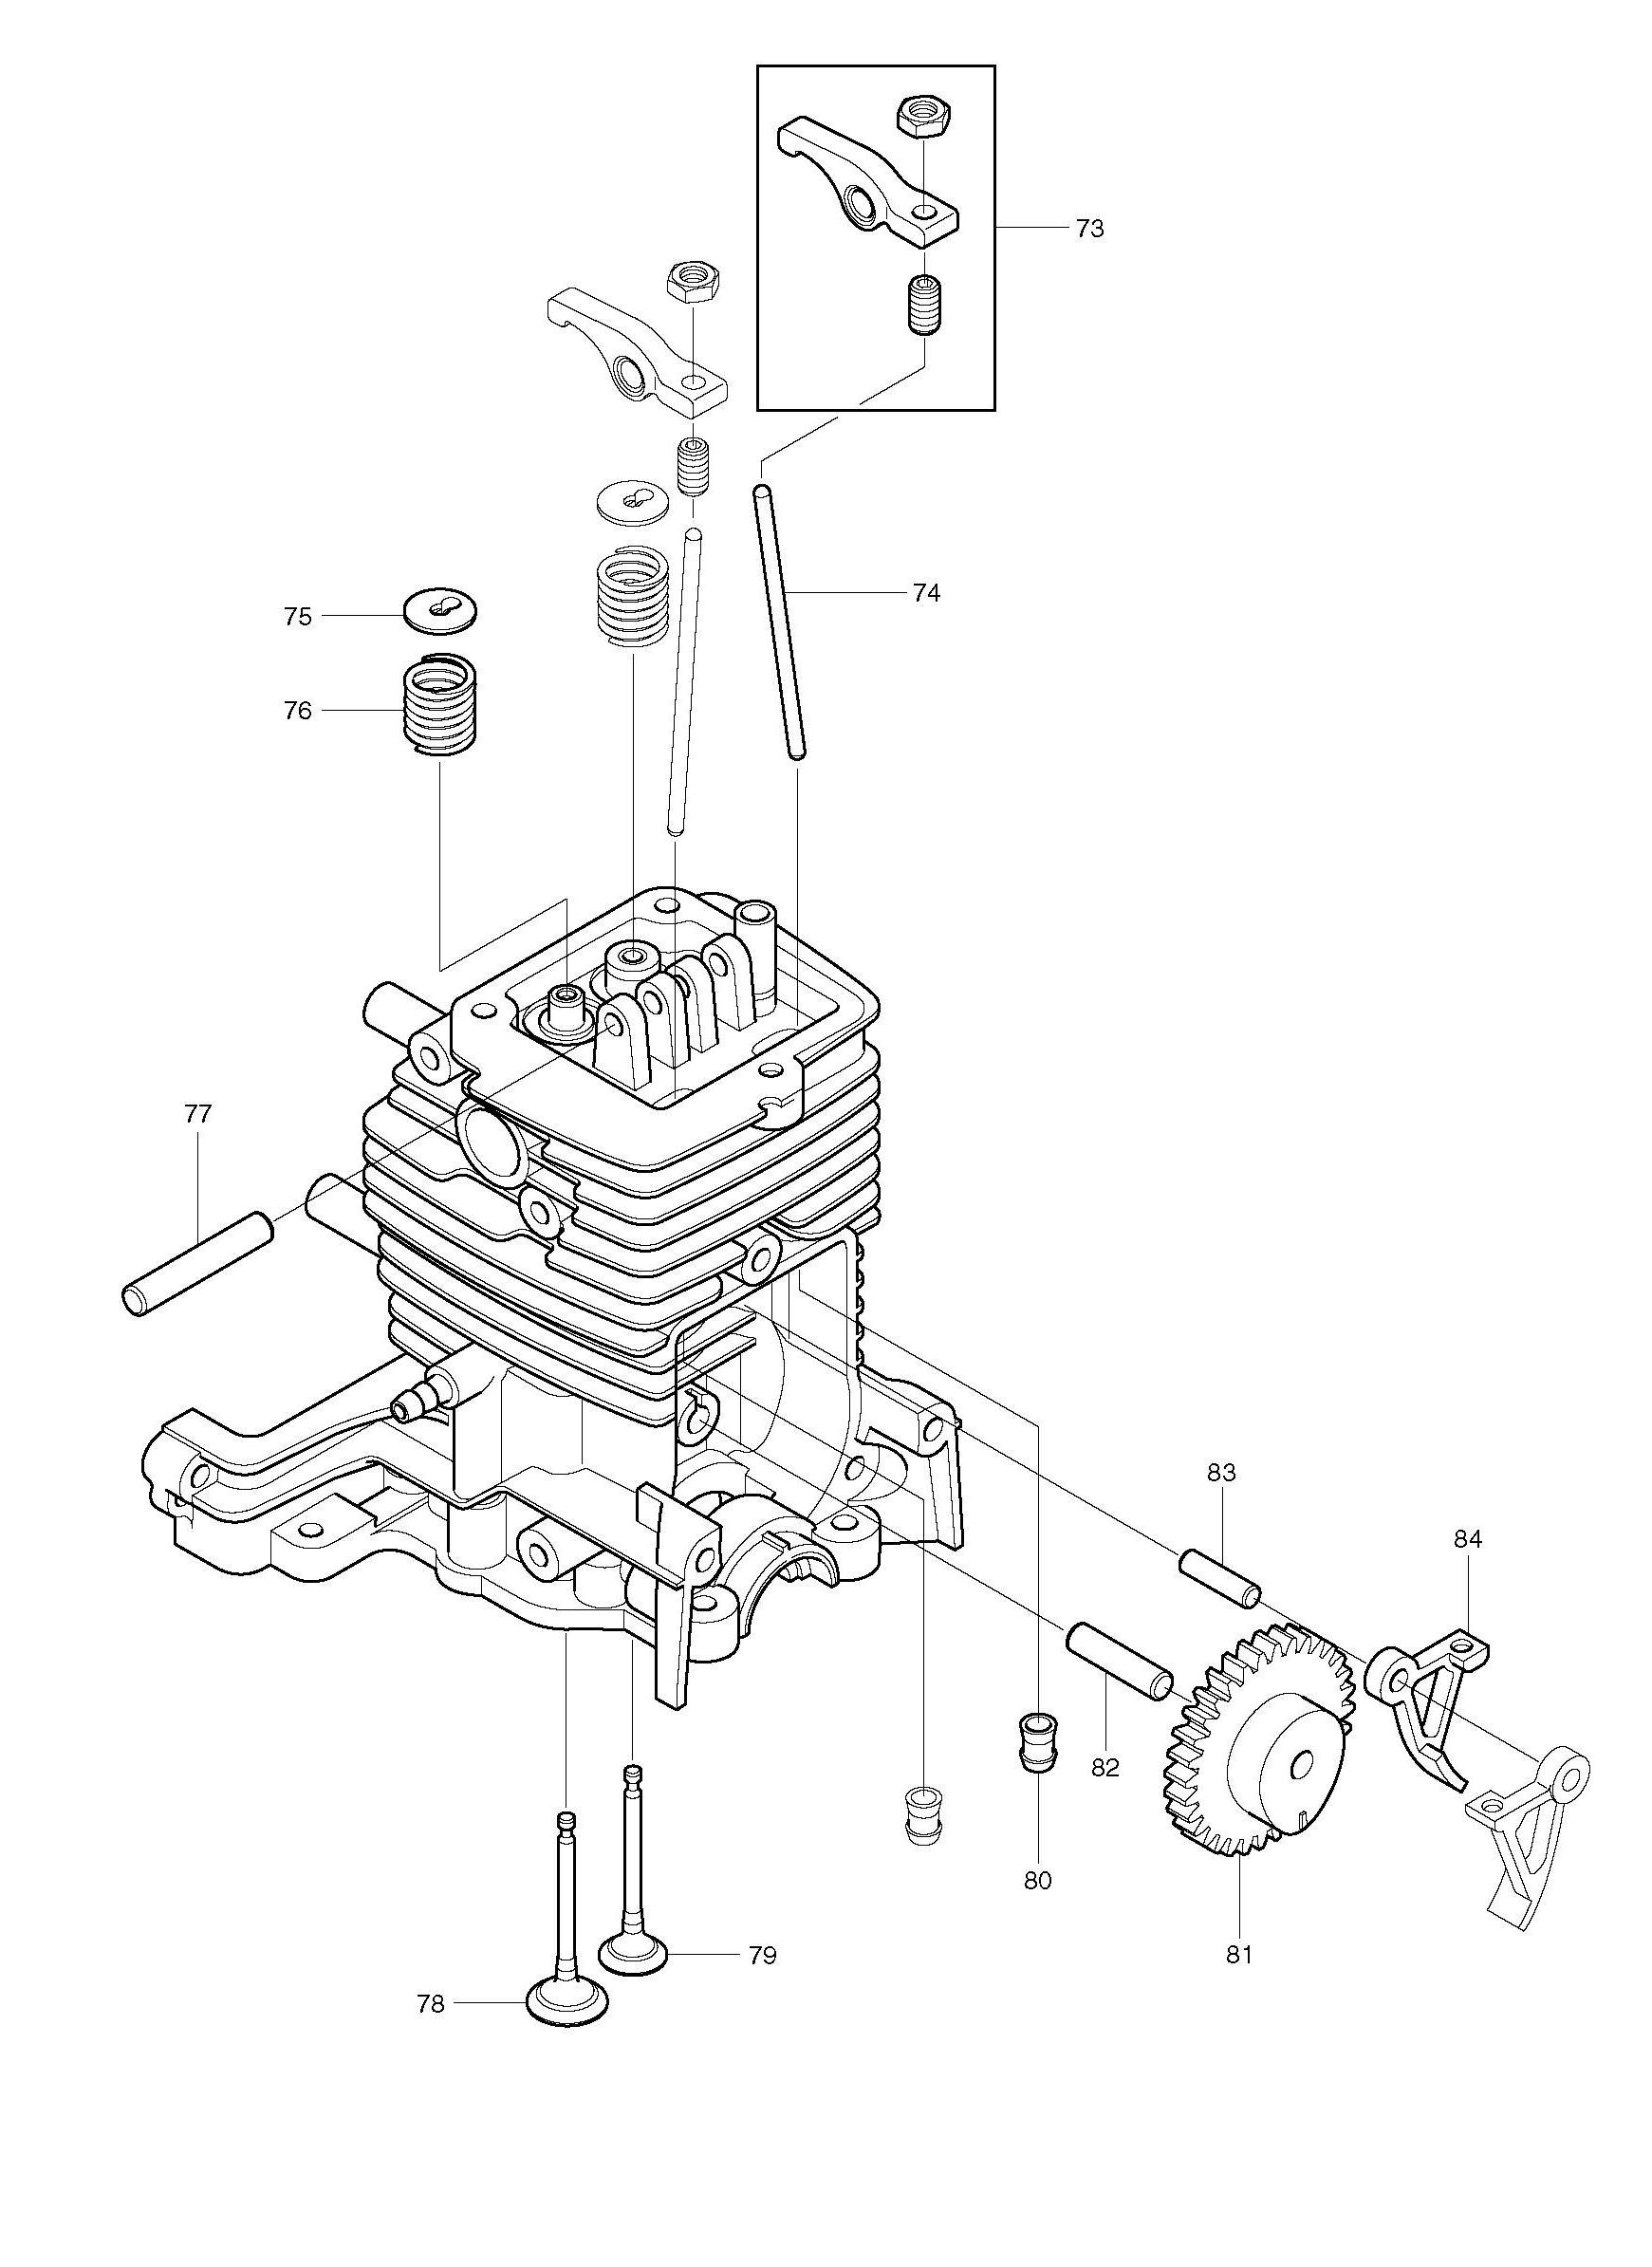 Spares for Makita Bhx2500 4 Stroke Petrol Blower SPARE BHX2500 from